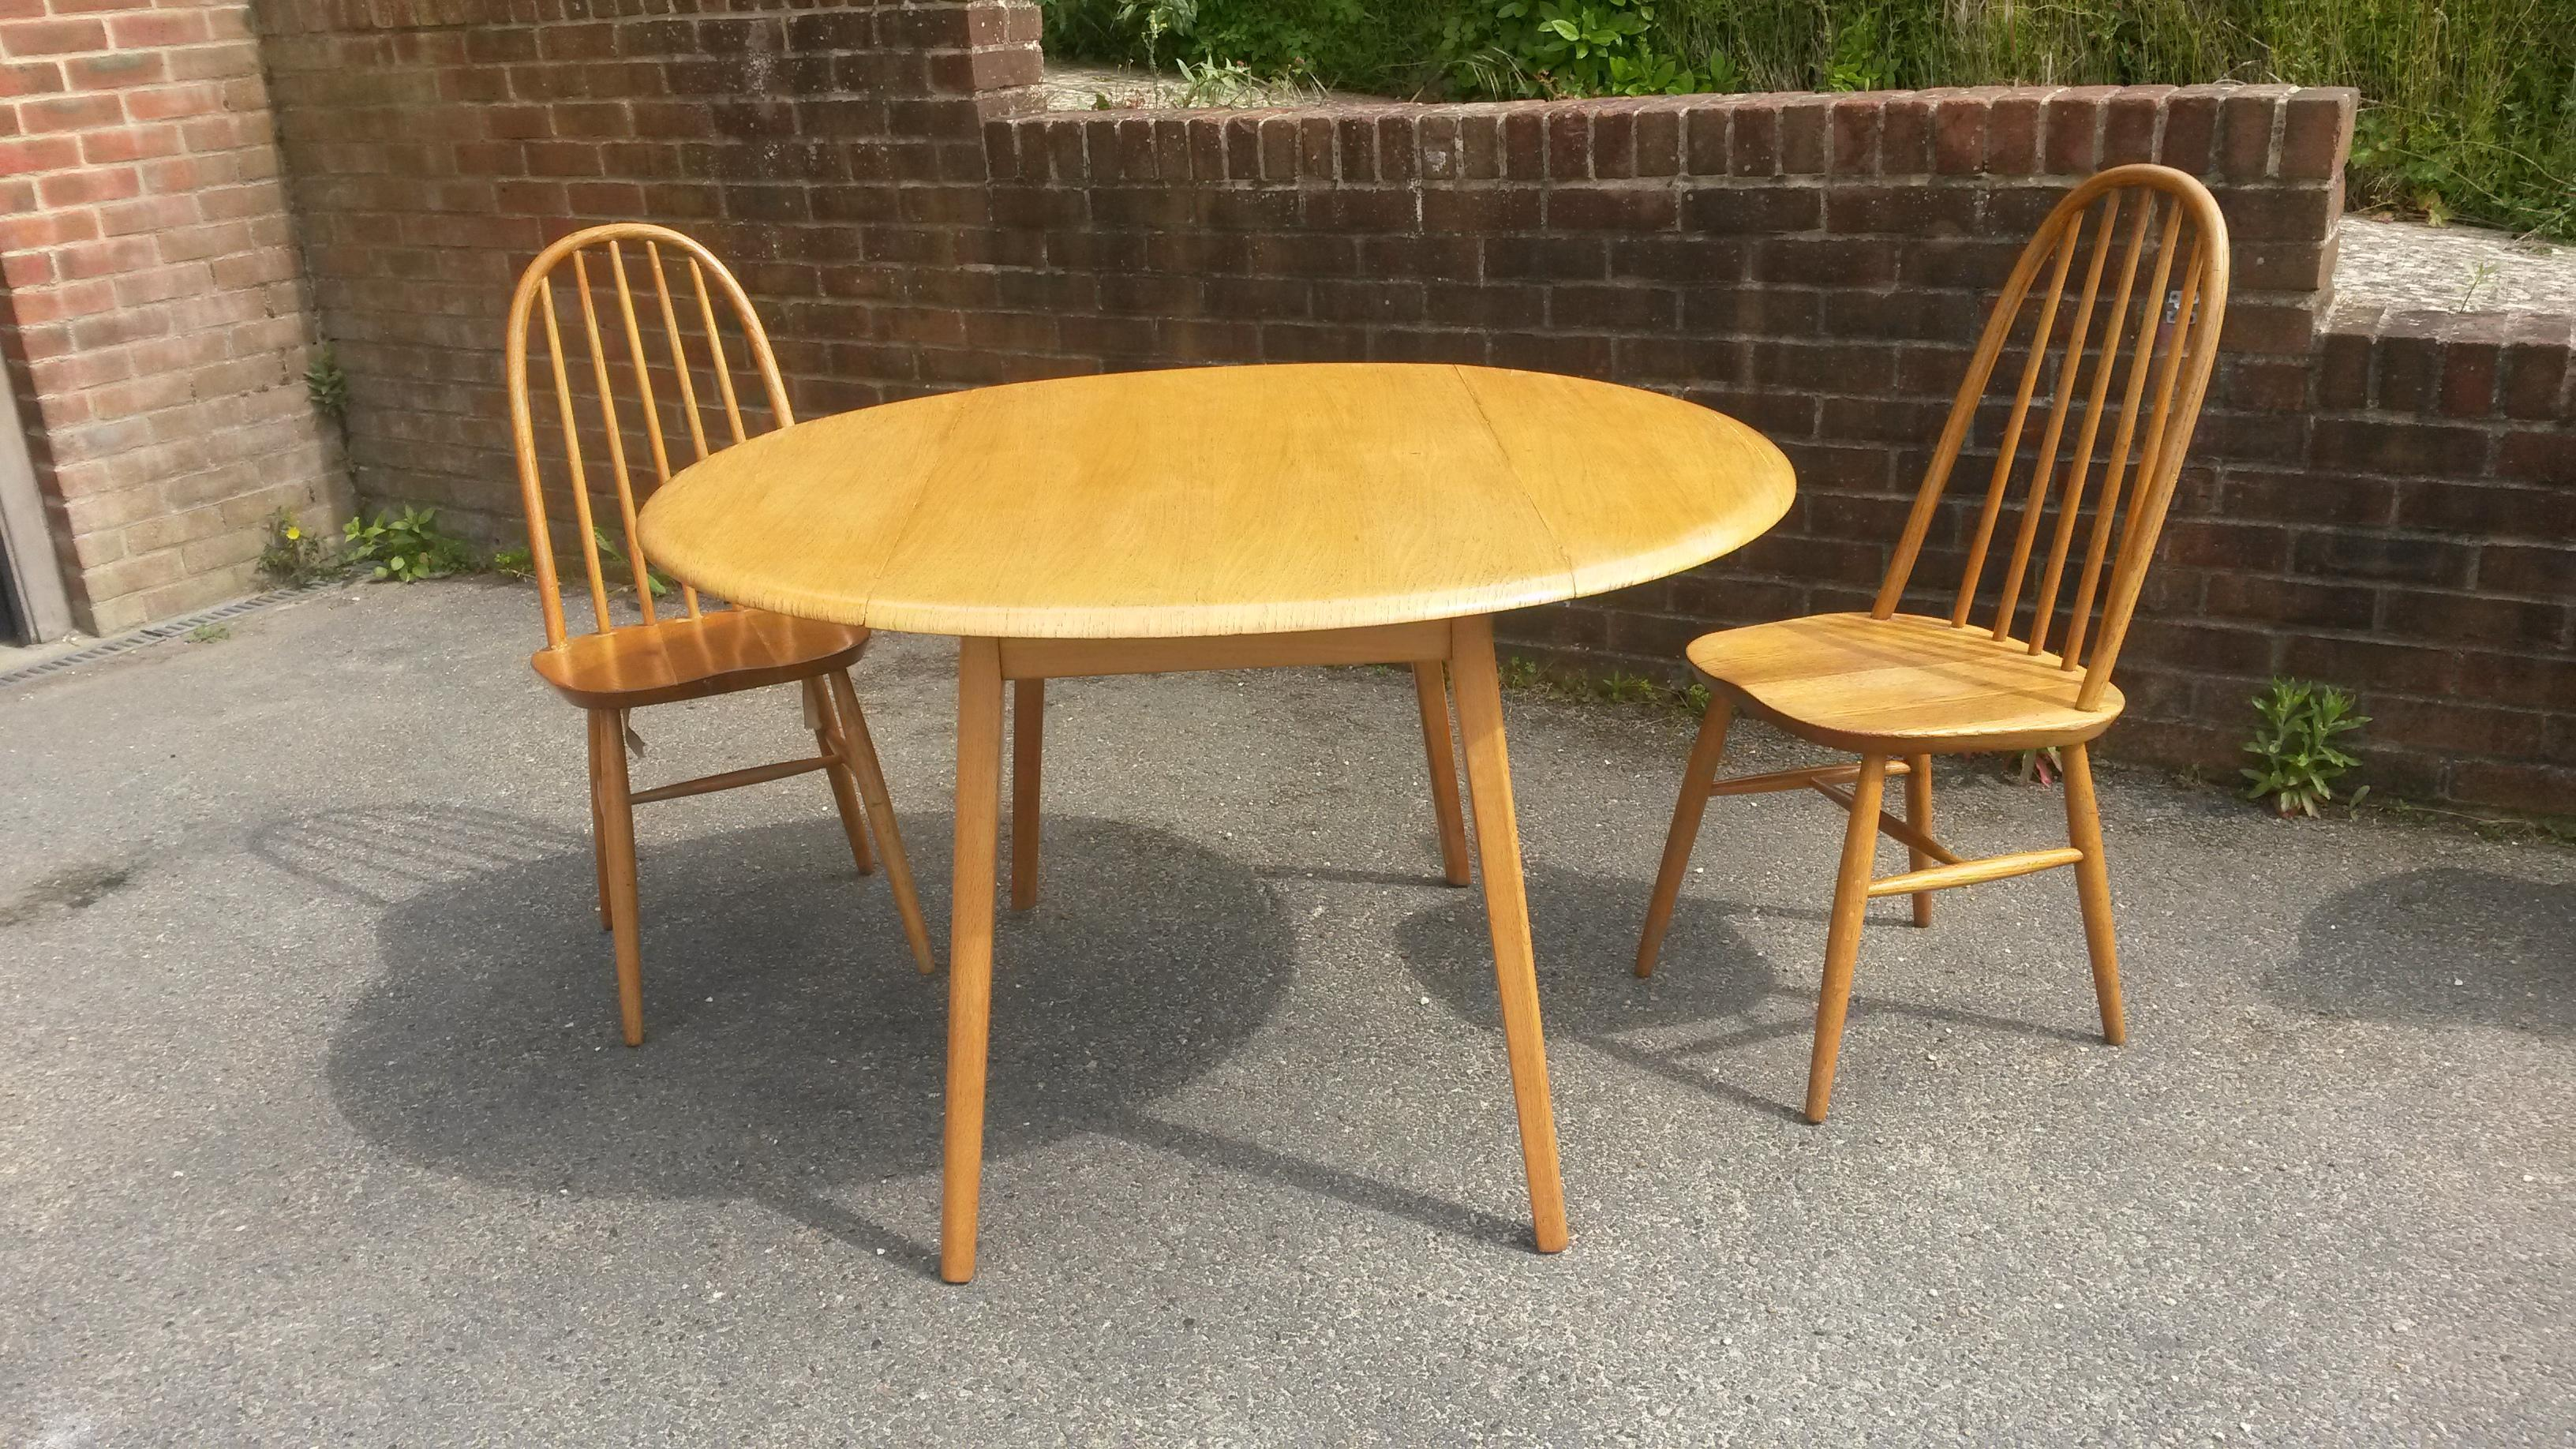 Pleasing Vintage Drop Leaf Dining Table And Chairs Set Retro Ercol Download Free Architecture Designs Licukmadebymaigaardcom